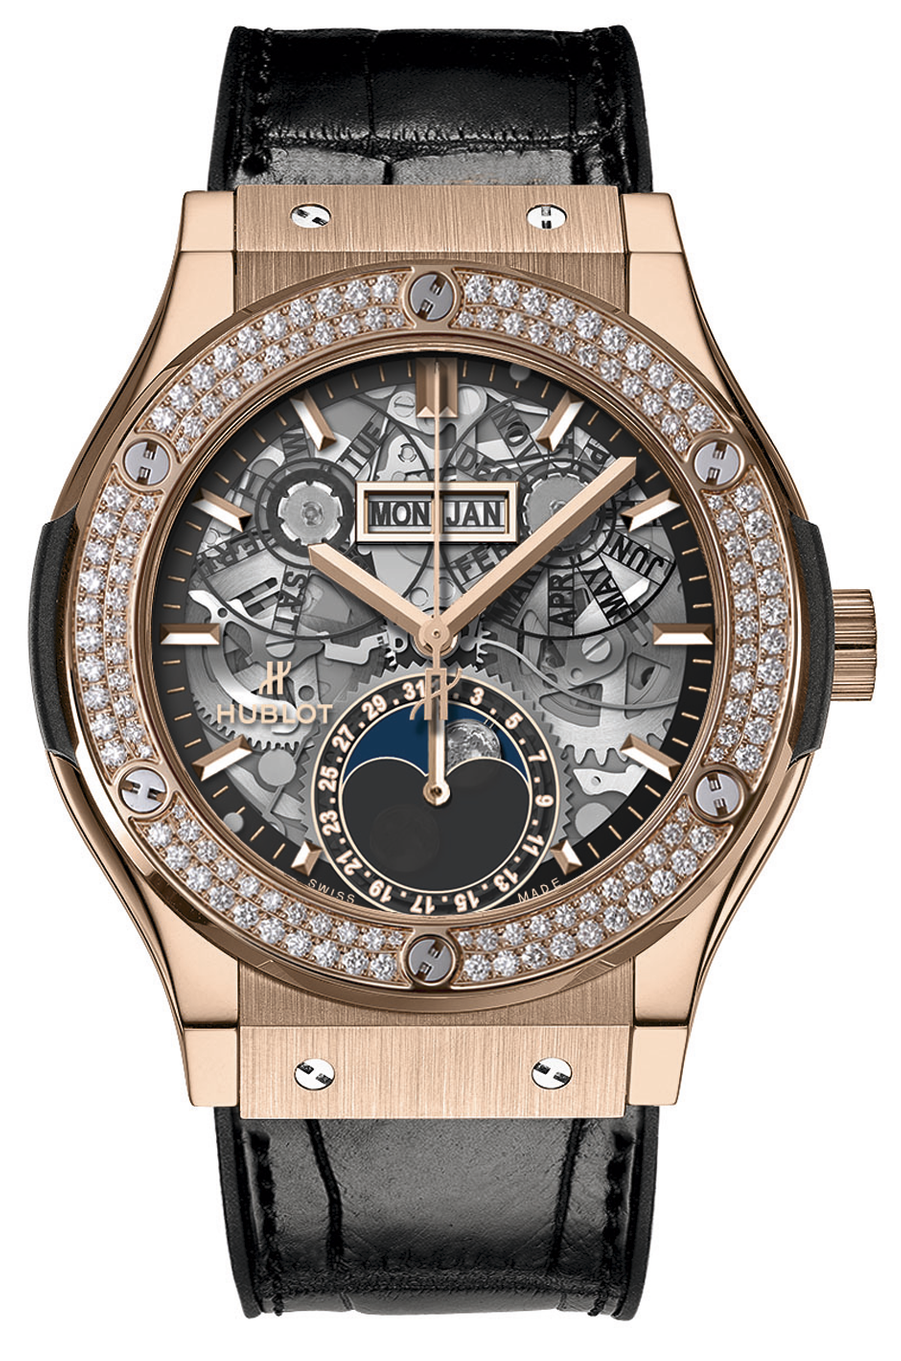 Classic Fusion Aerofusion en or rose et diamants, mouvement automatique à calendrier complet, jour, mois, date et phases de lune, bracelet en alligator cousu sur alligator. Hublot. 32 500 €.